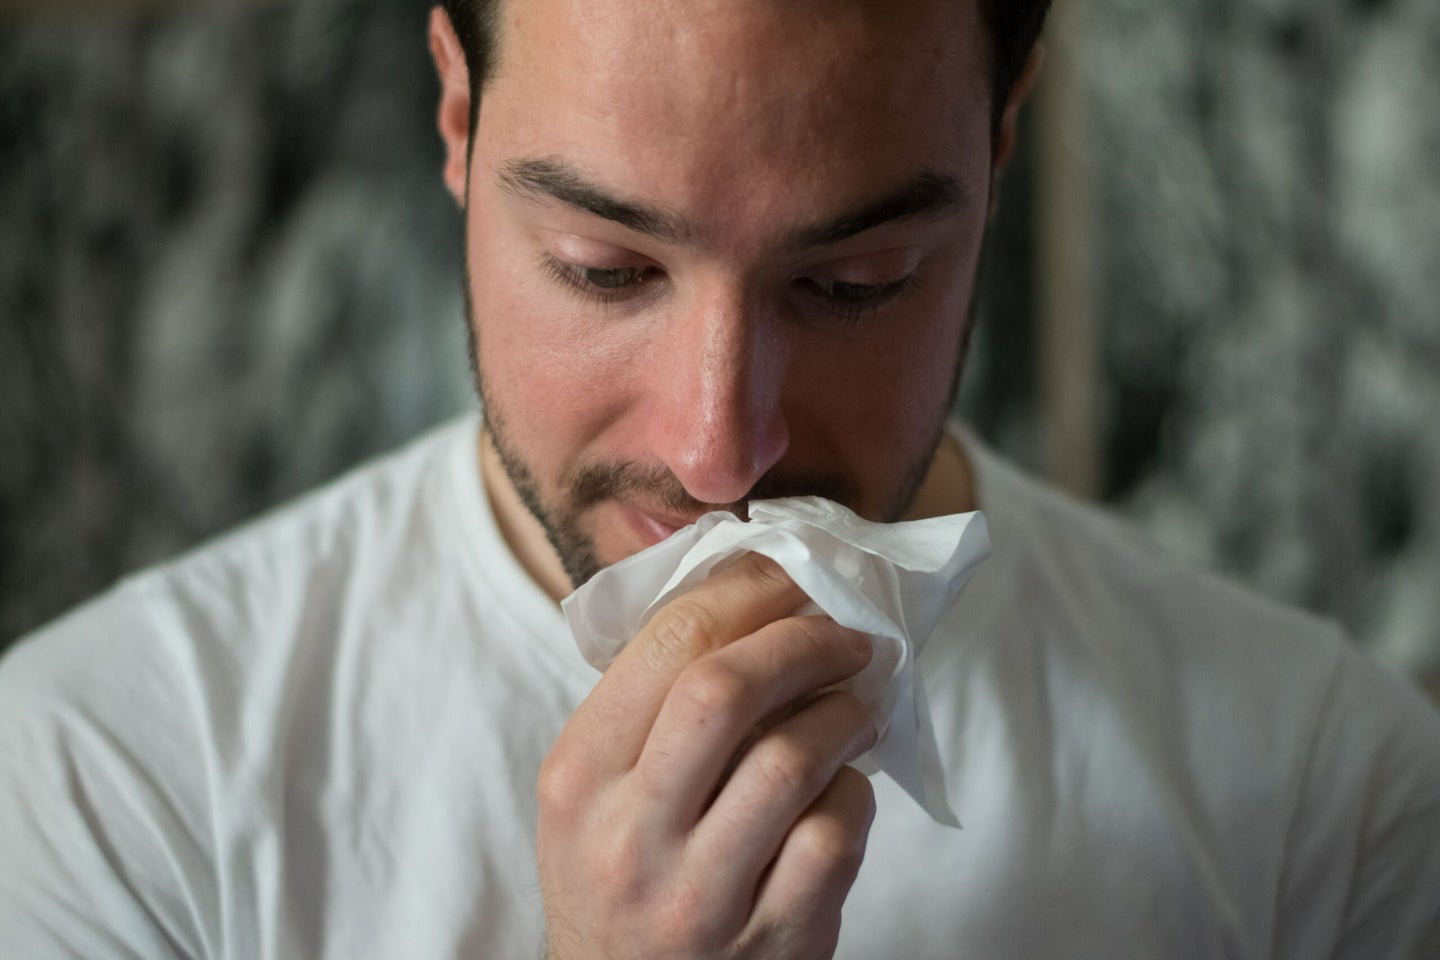 person holding tissue to nose